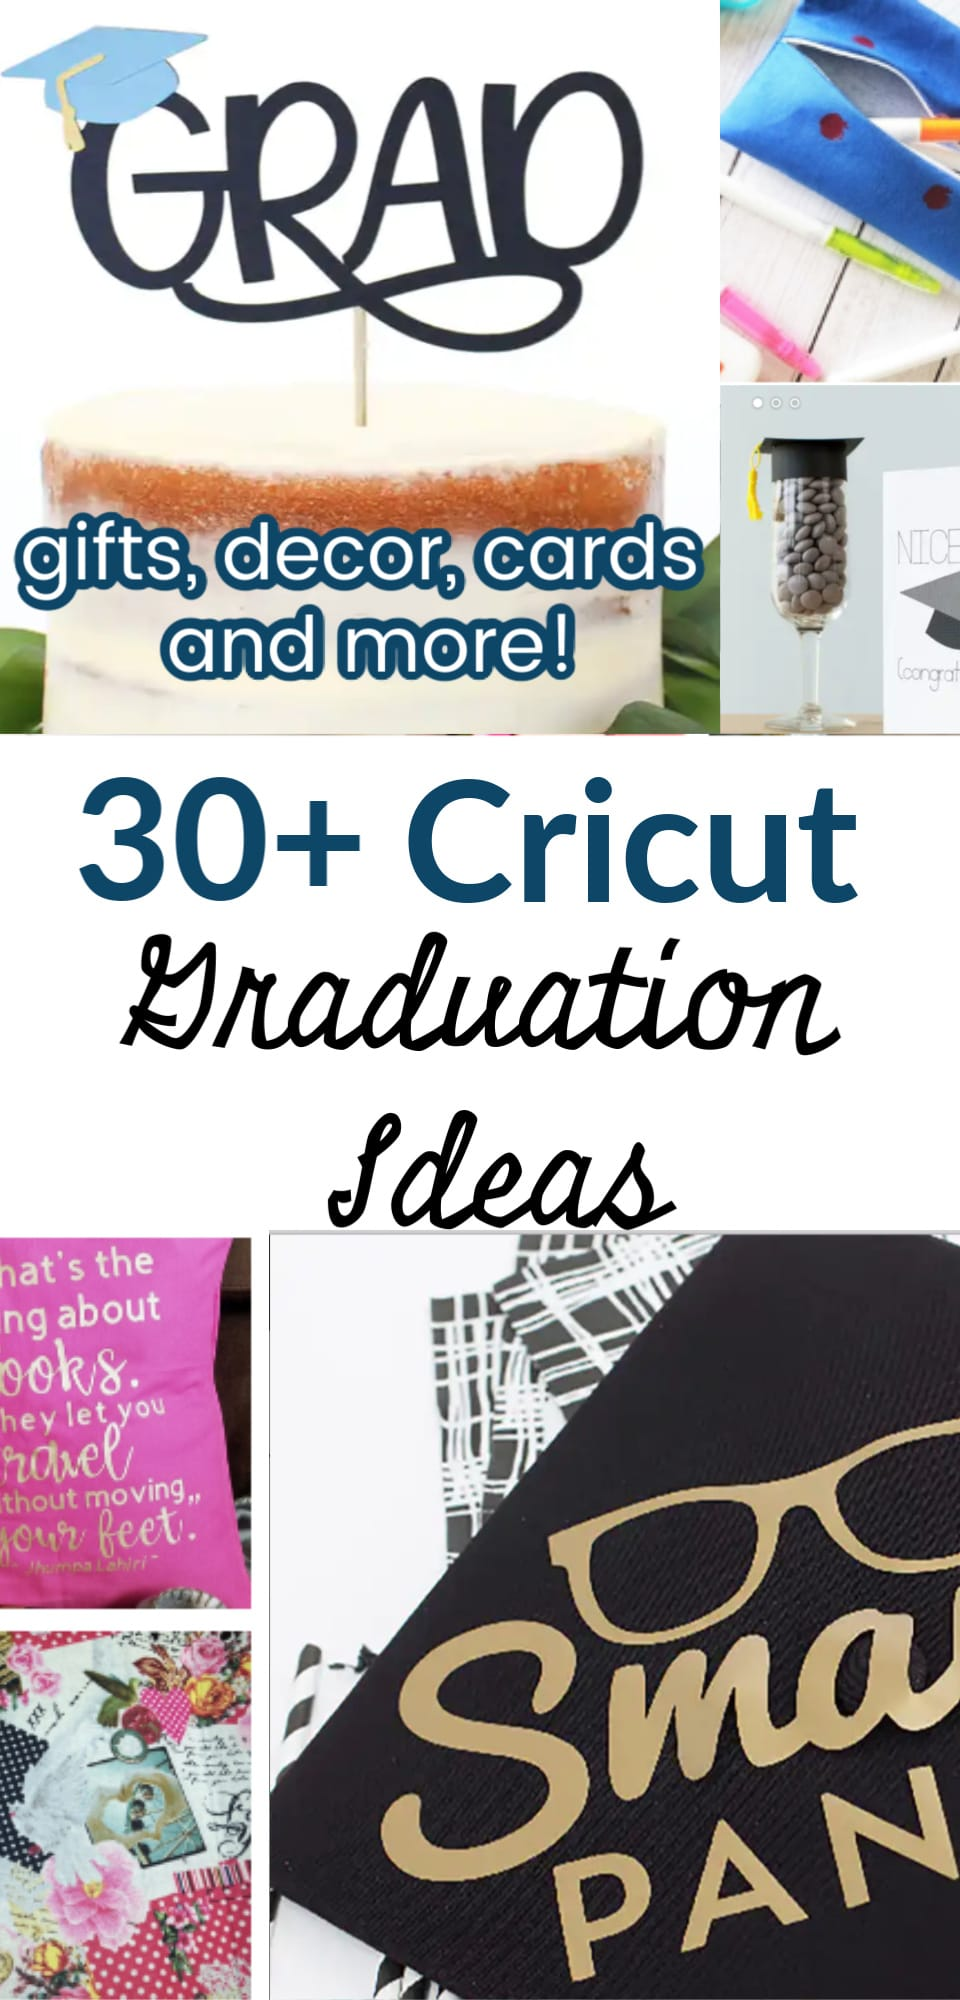 Celebrate your graduate in style with these Cricut Graduation ideas! We have ideas cards, gifts, decor, and more! Customize this momentous day with something fun! Graduation decal ideas. via @clarkscondensed